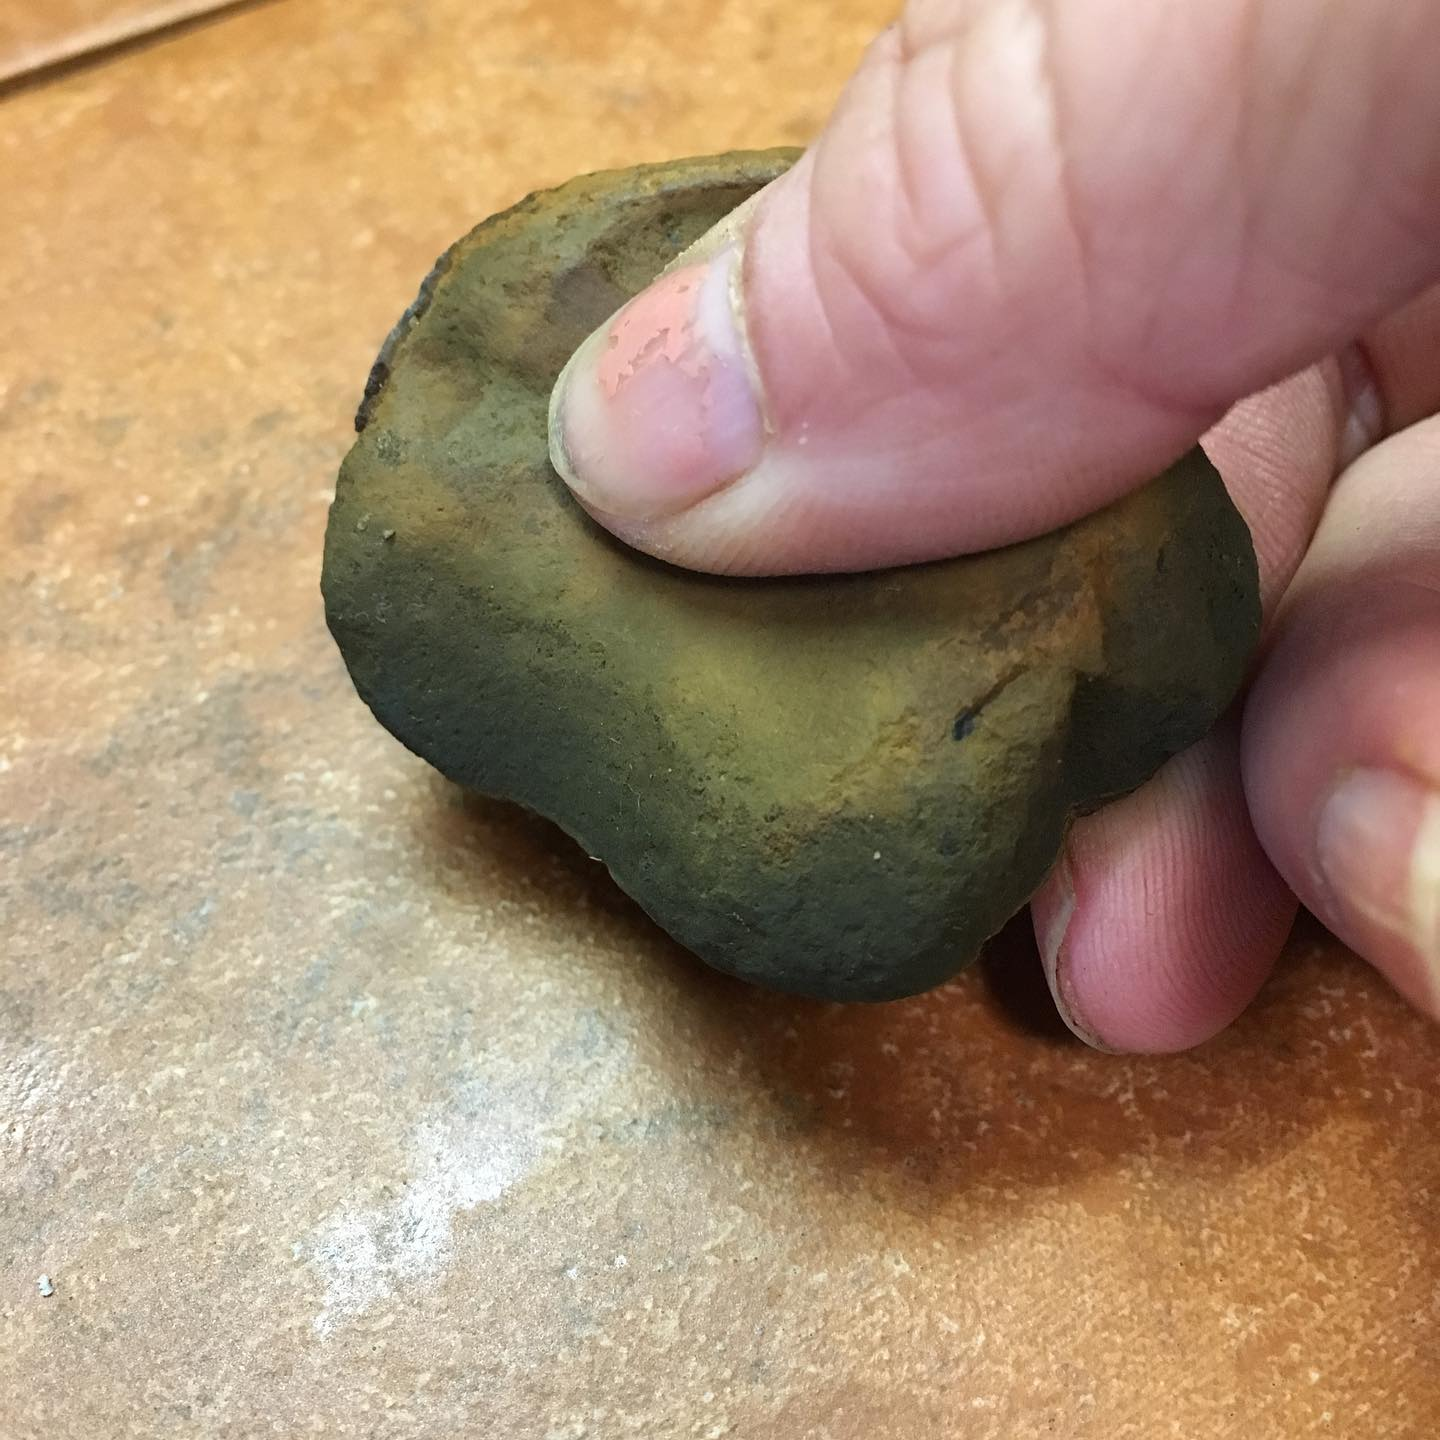 While out gathering earth pigments, I found this rock that might have once been used as a tool.